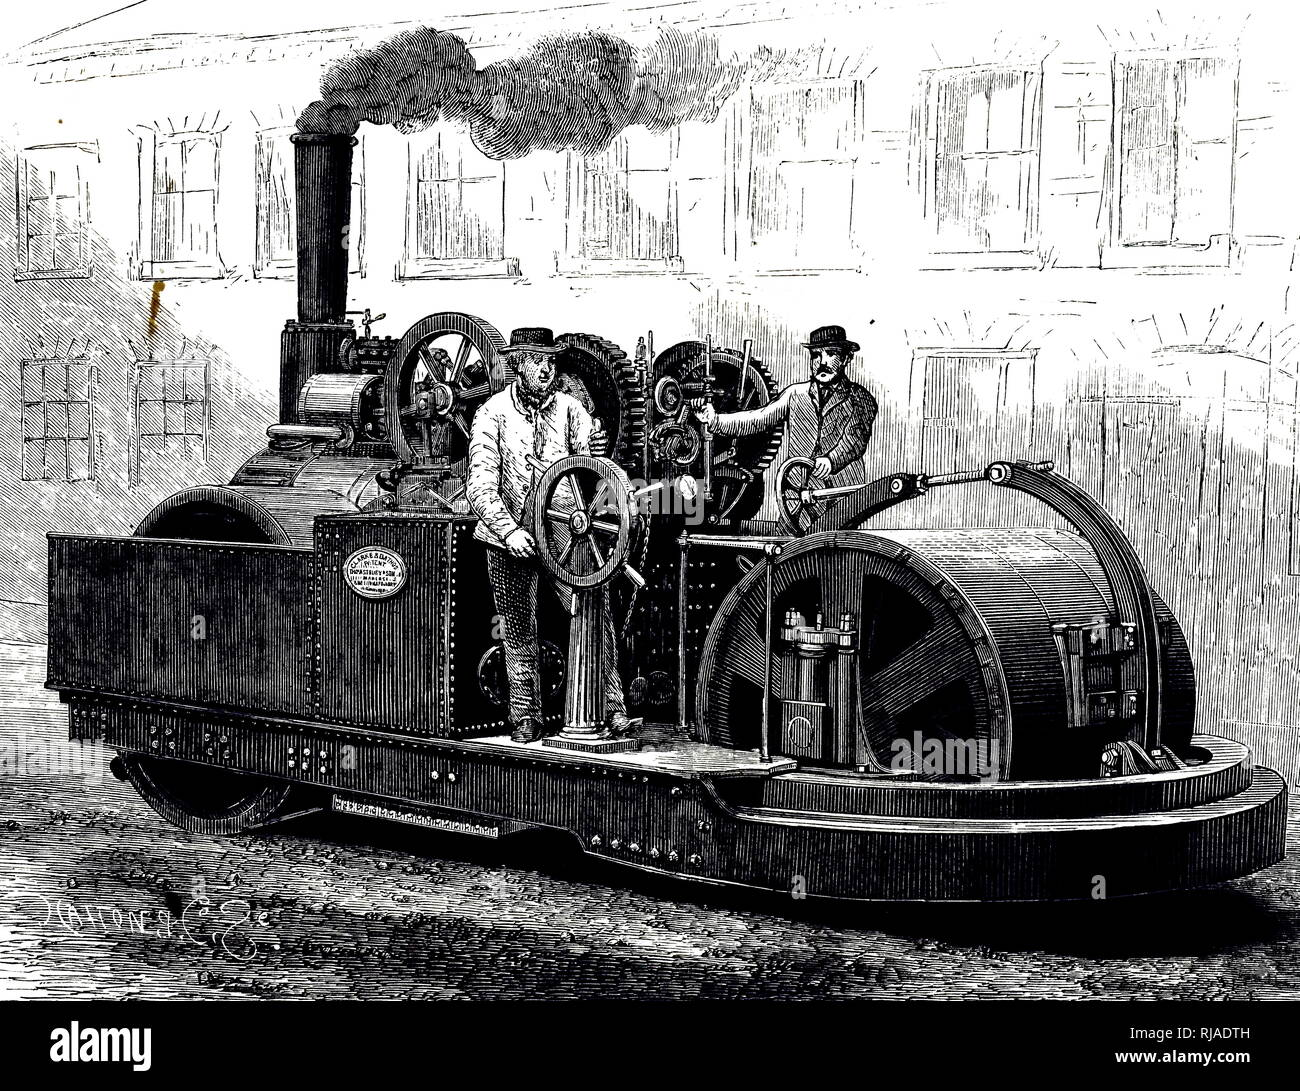 An engraving depicting Messrs Clarke & Batho's steamroller. Dated 19th century - Stock Image